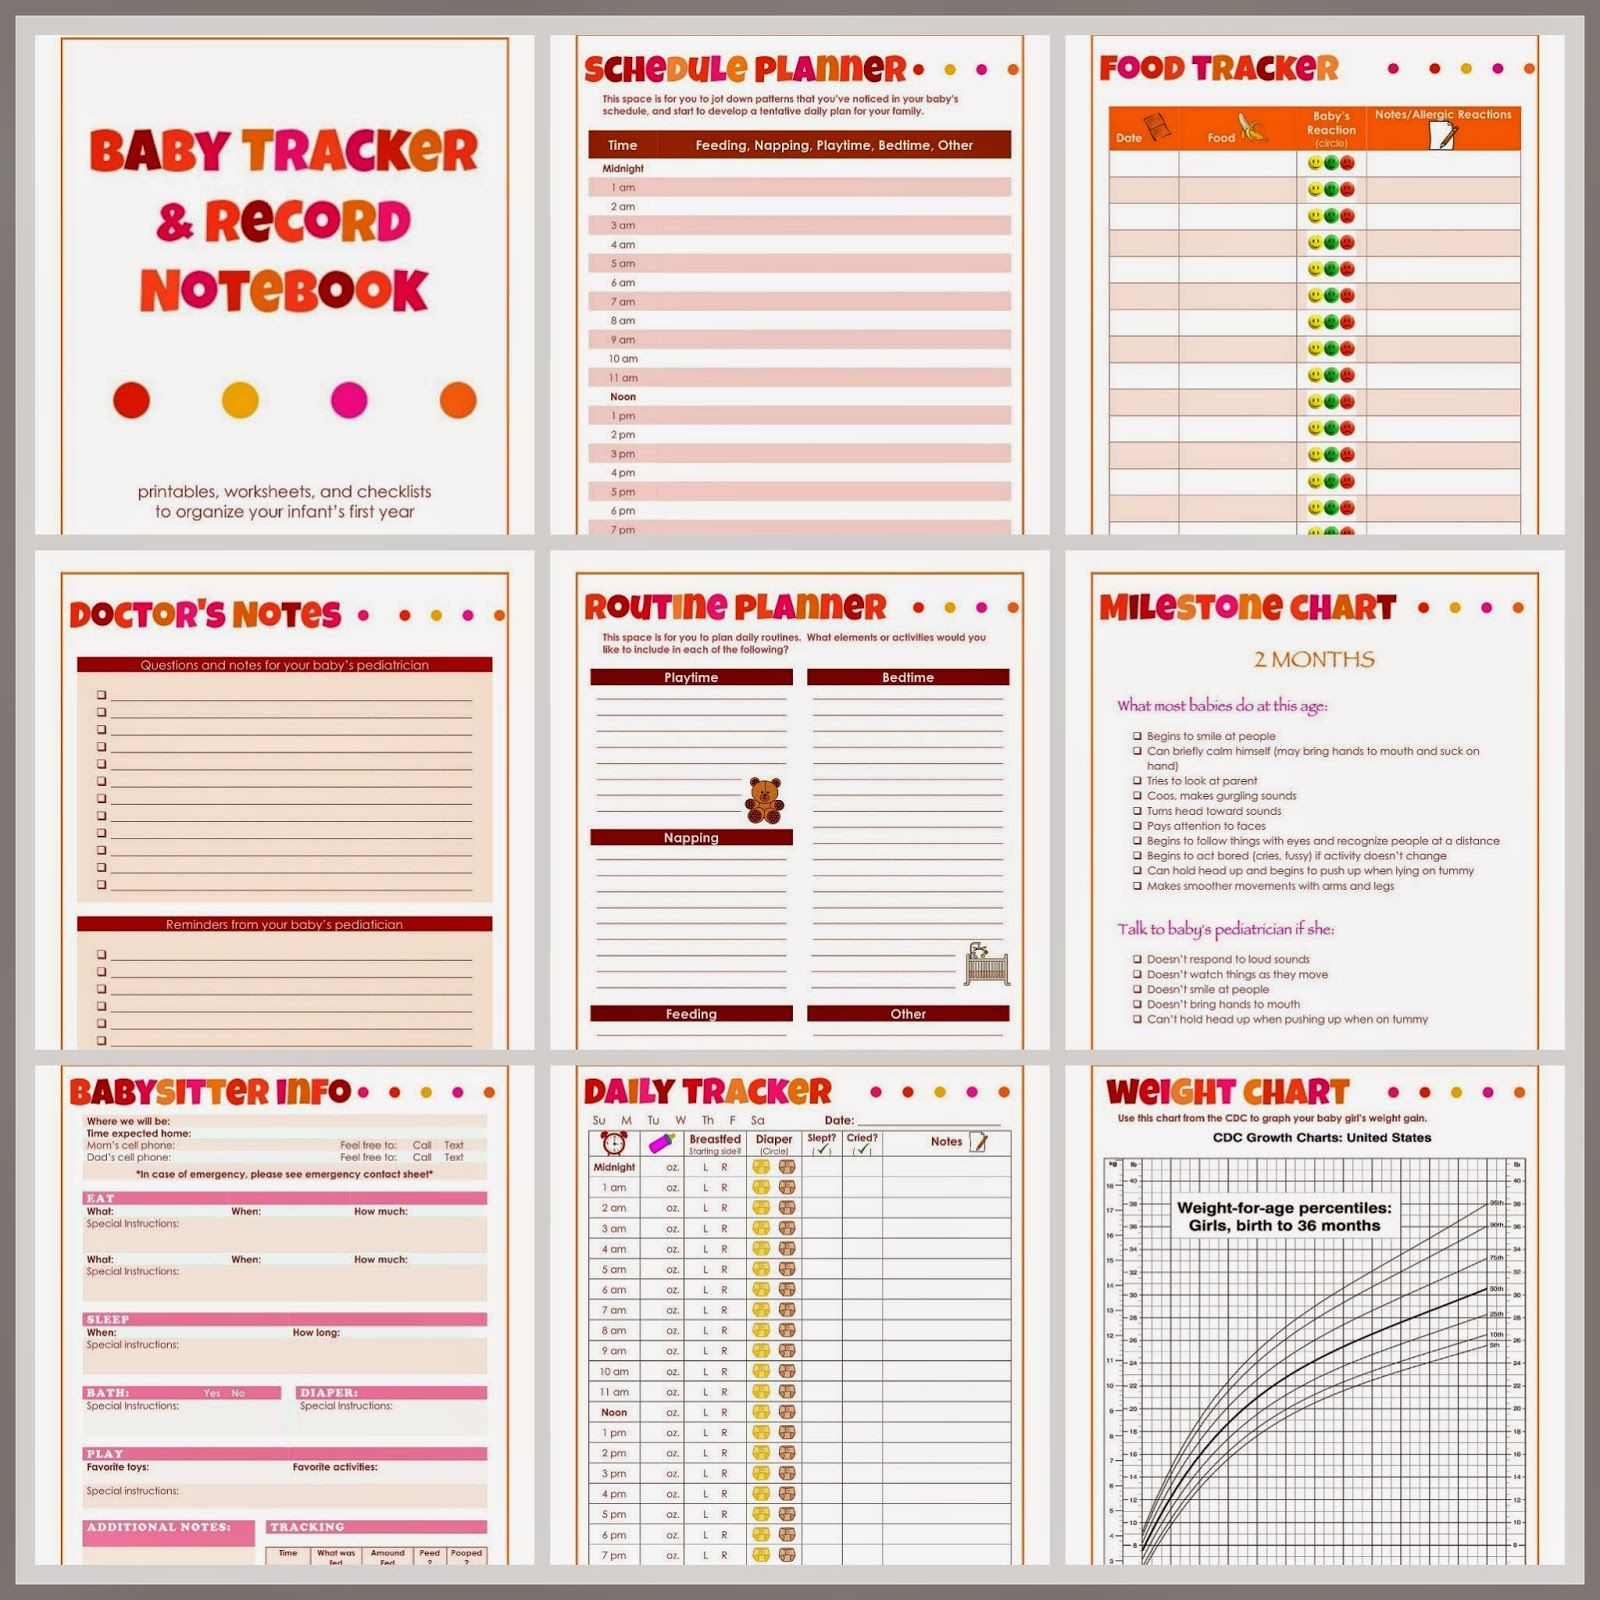 worksheet Flour Babies Worksheets baby tracker and record notebook for girls printables worksheets checklists to organize